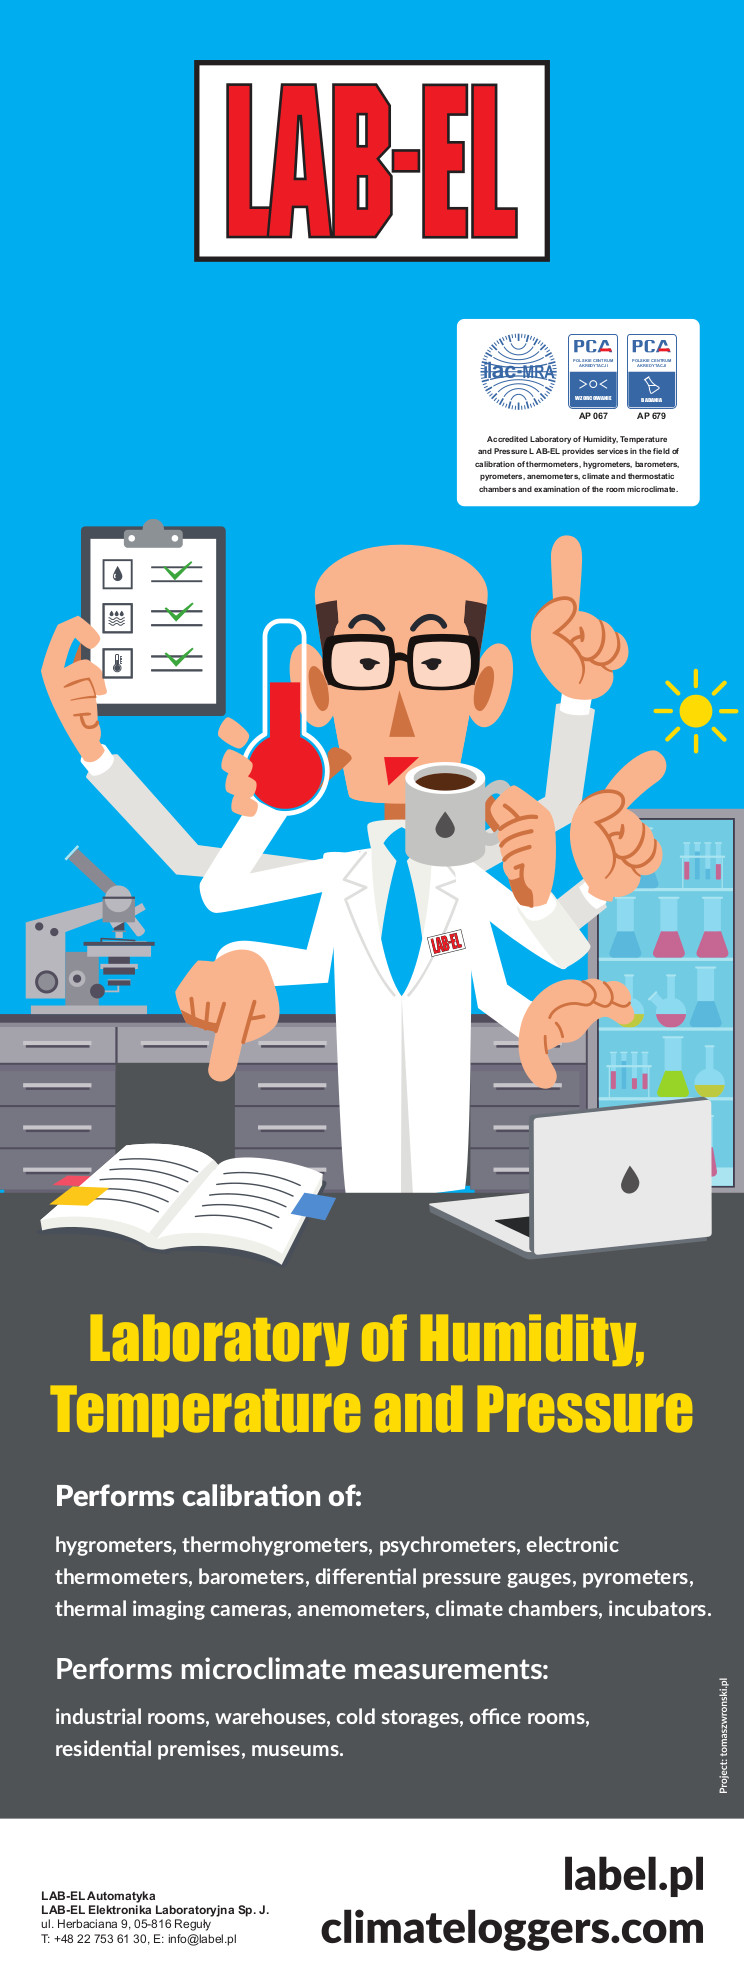 Laboratory of Humidity, Temperature and Pressure